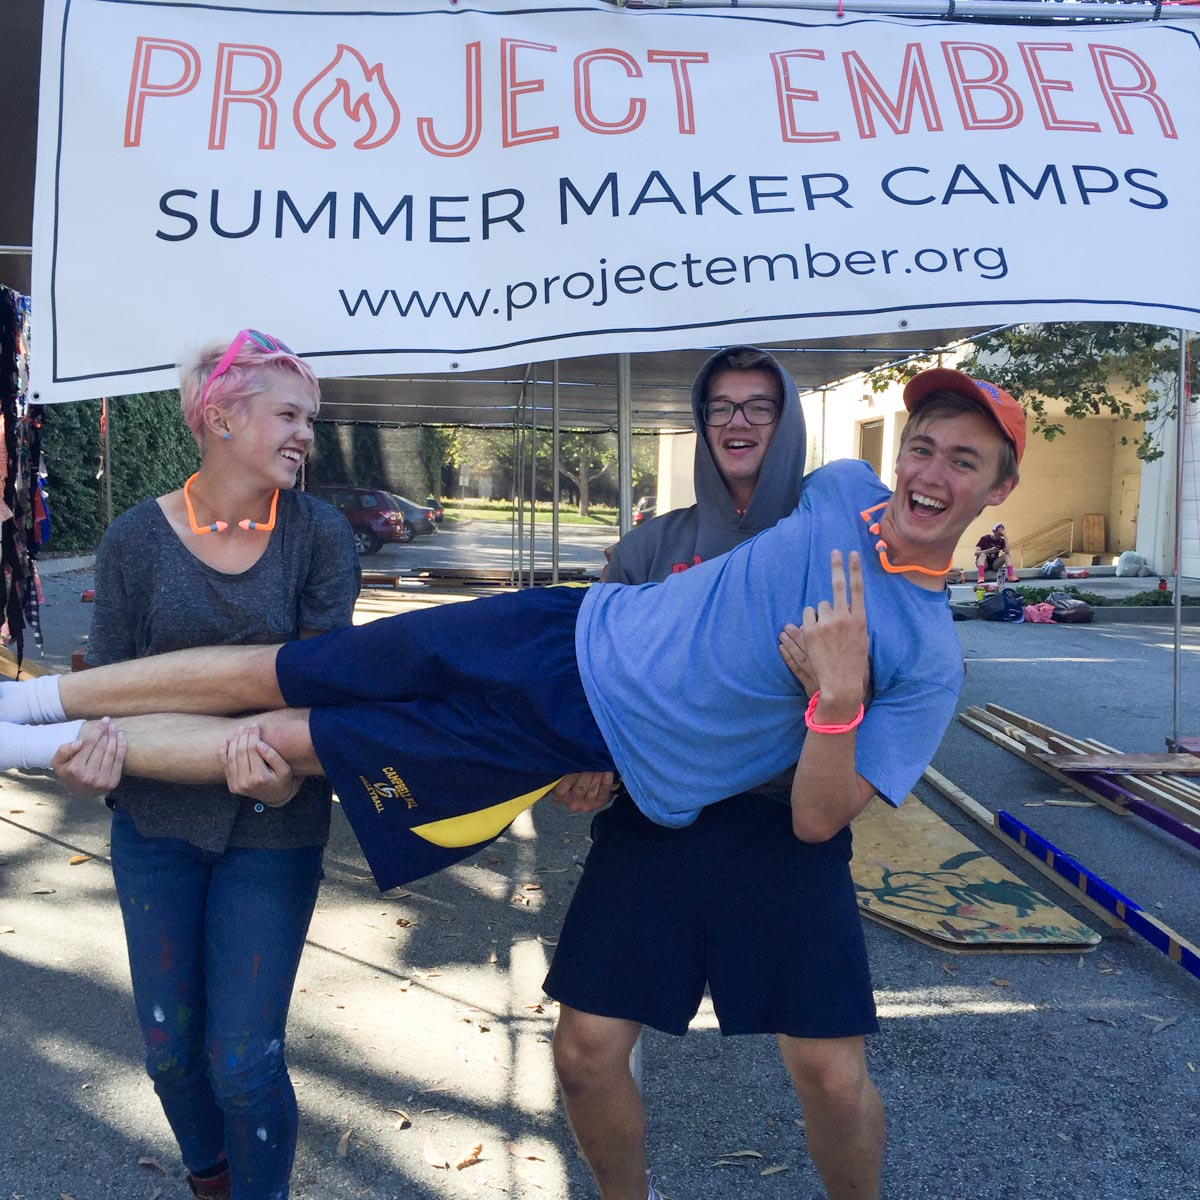 We are excited to welcome Anna, Alex and Addison to Project Ember (and they seem pretty happy about it too!)